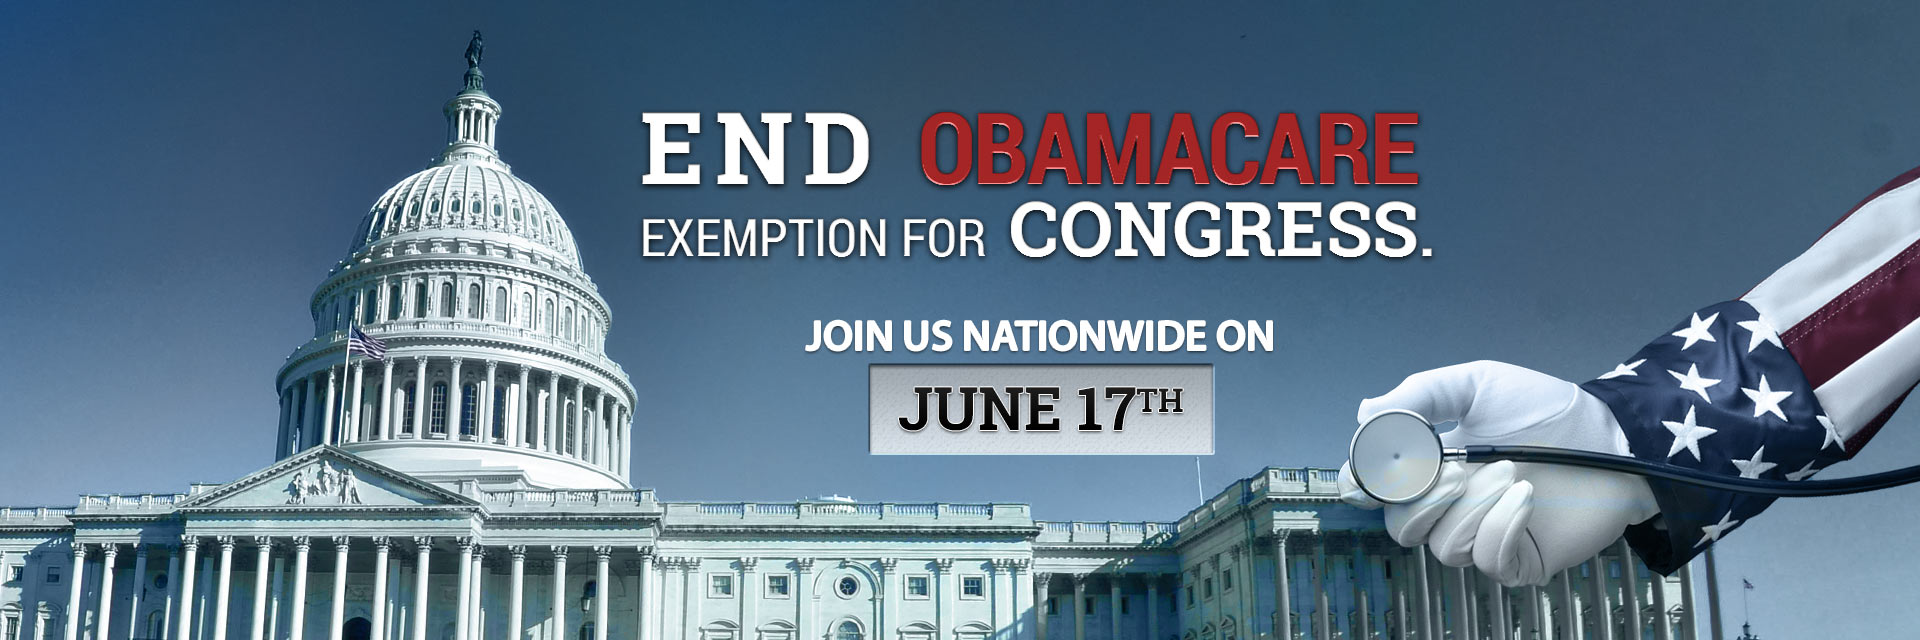 End-Obamacare-Exemption-HD-June-17